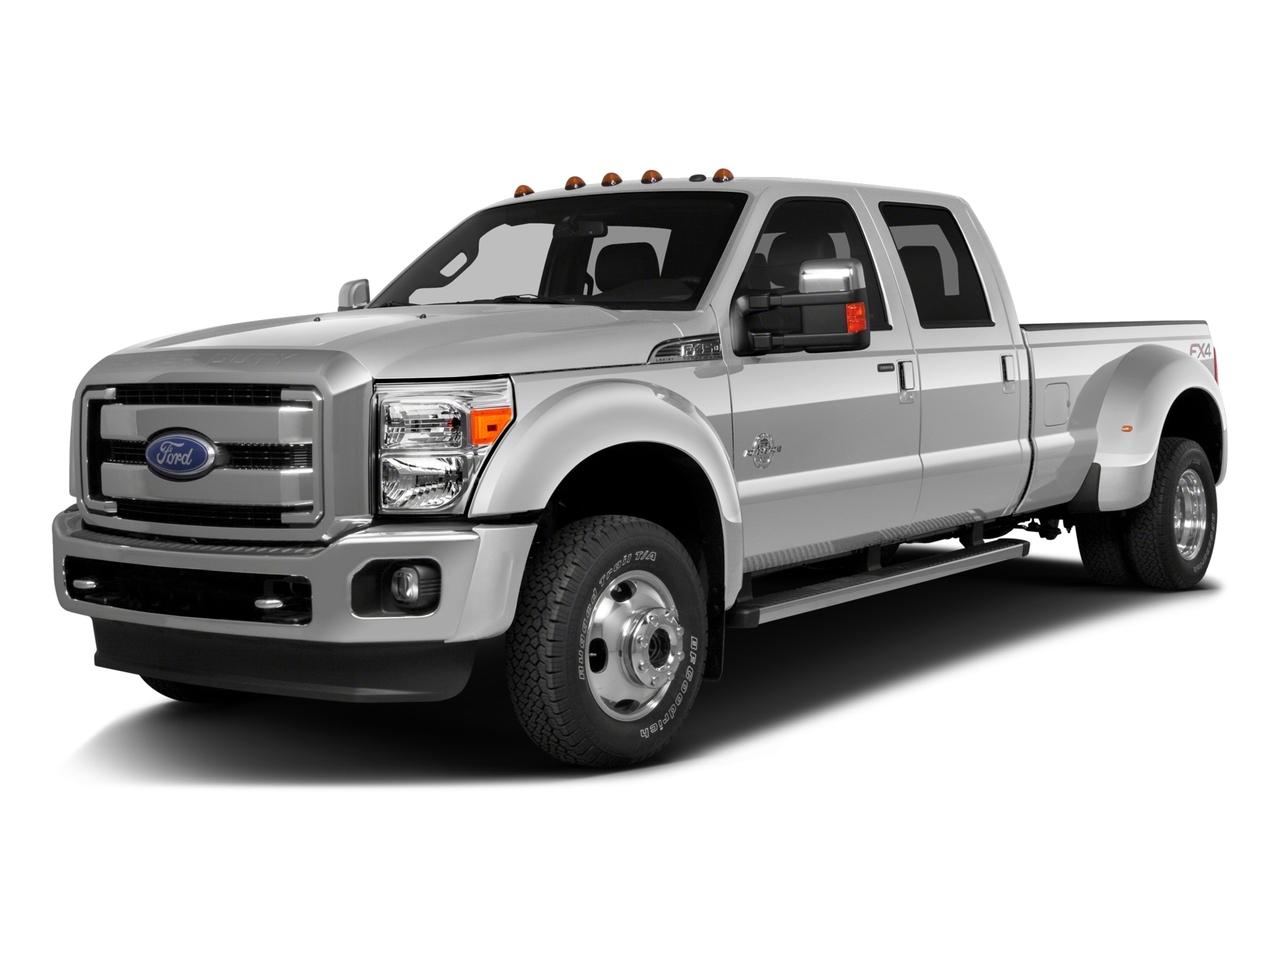 2016 Ford Super Duty F-350 DRW Vehicle Photo in Killeen, TX 76541